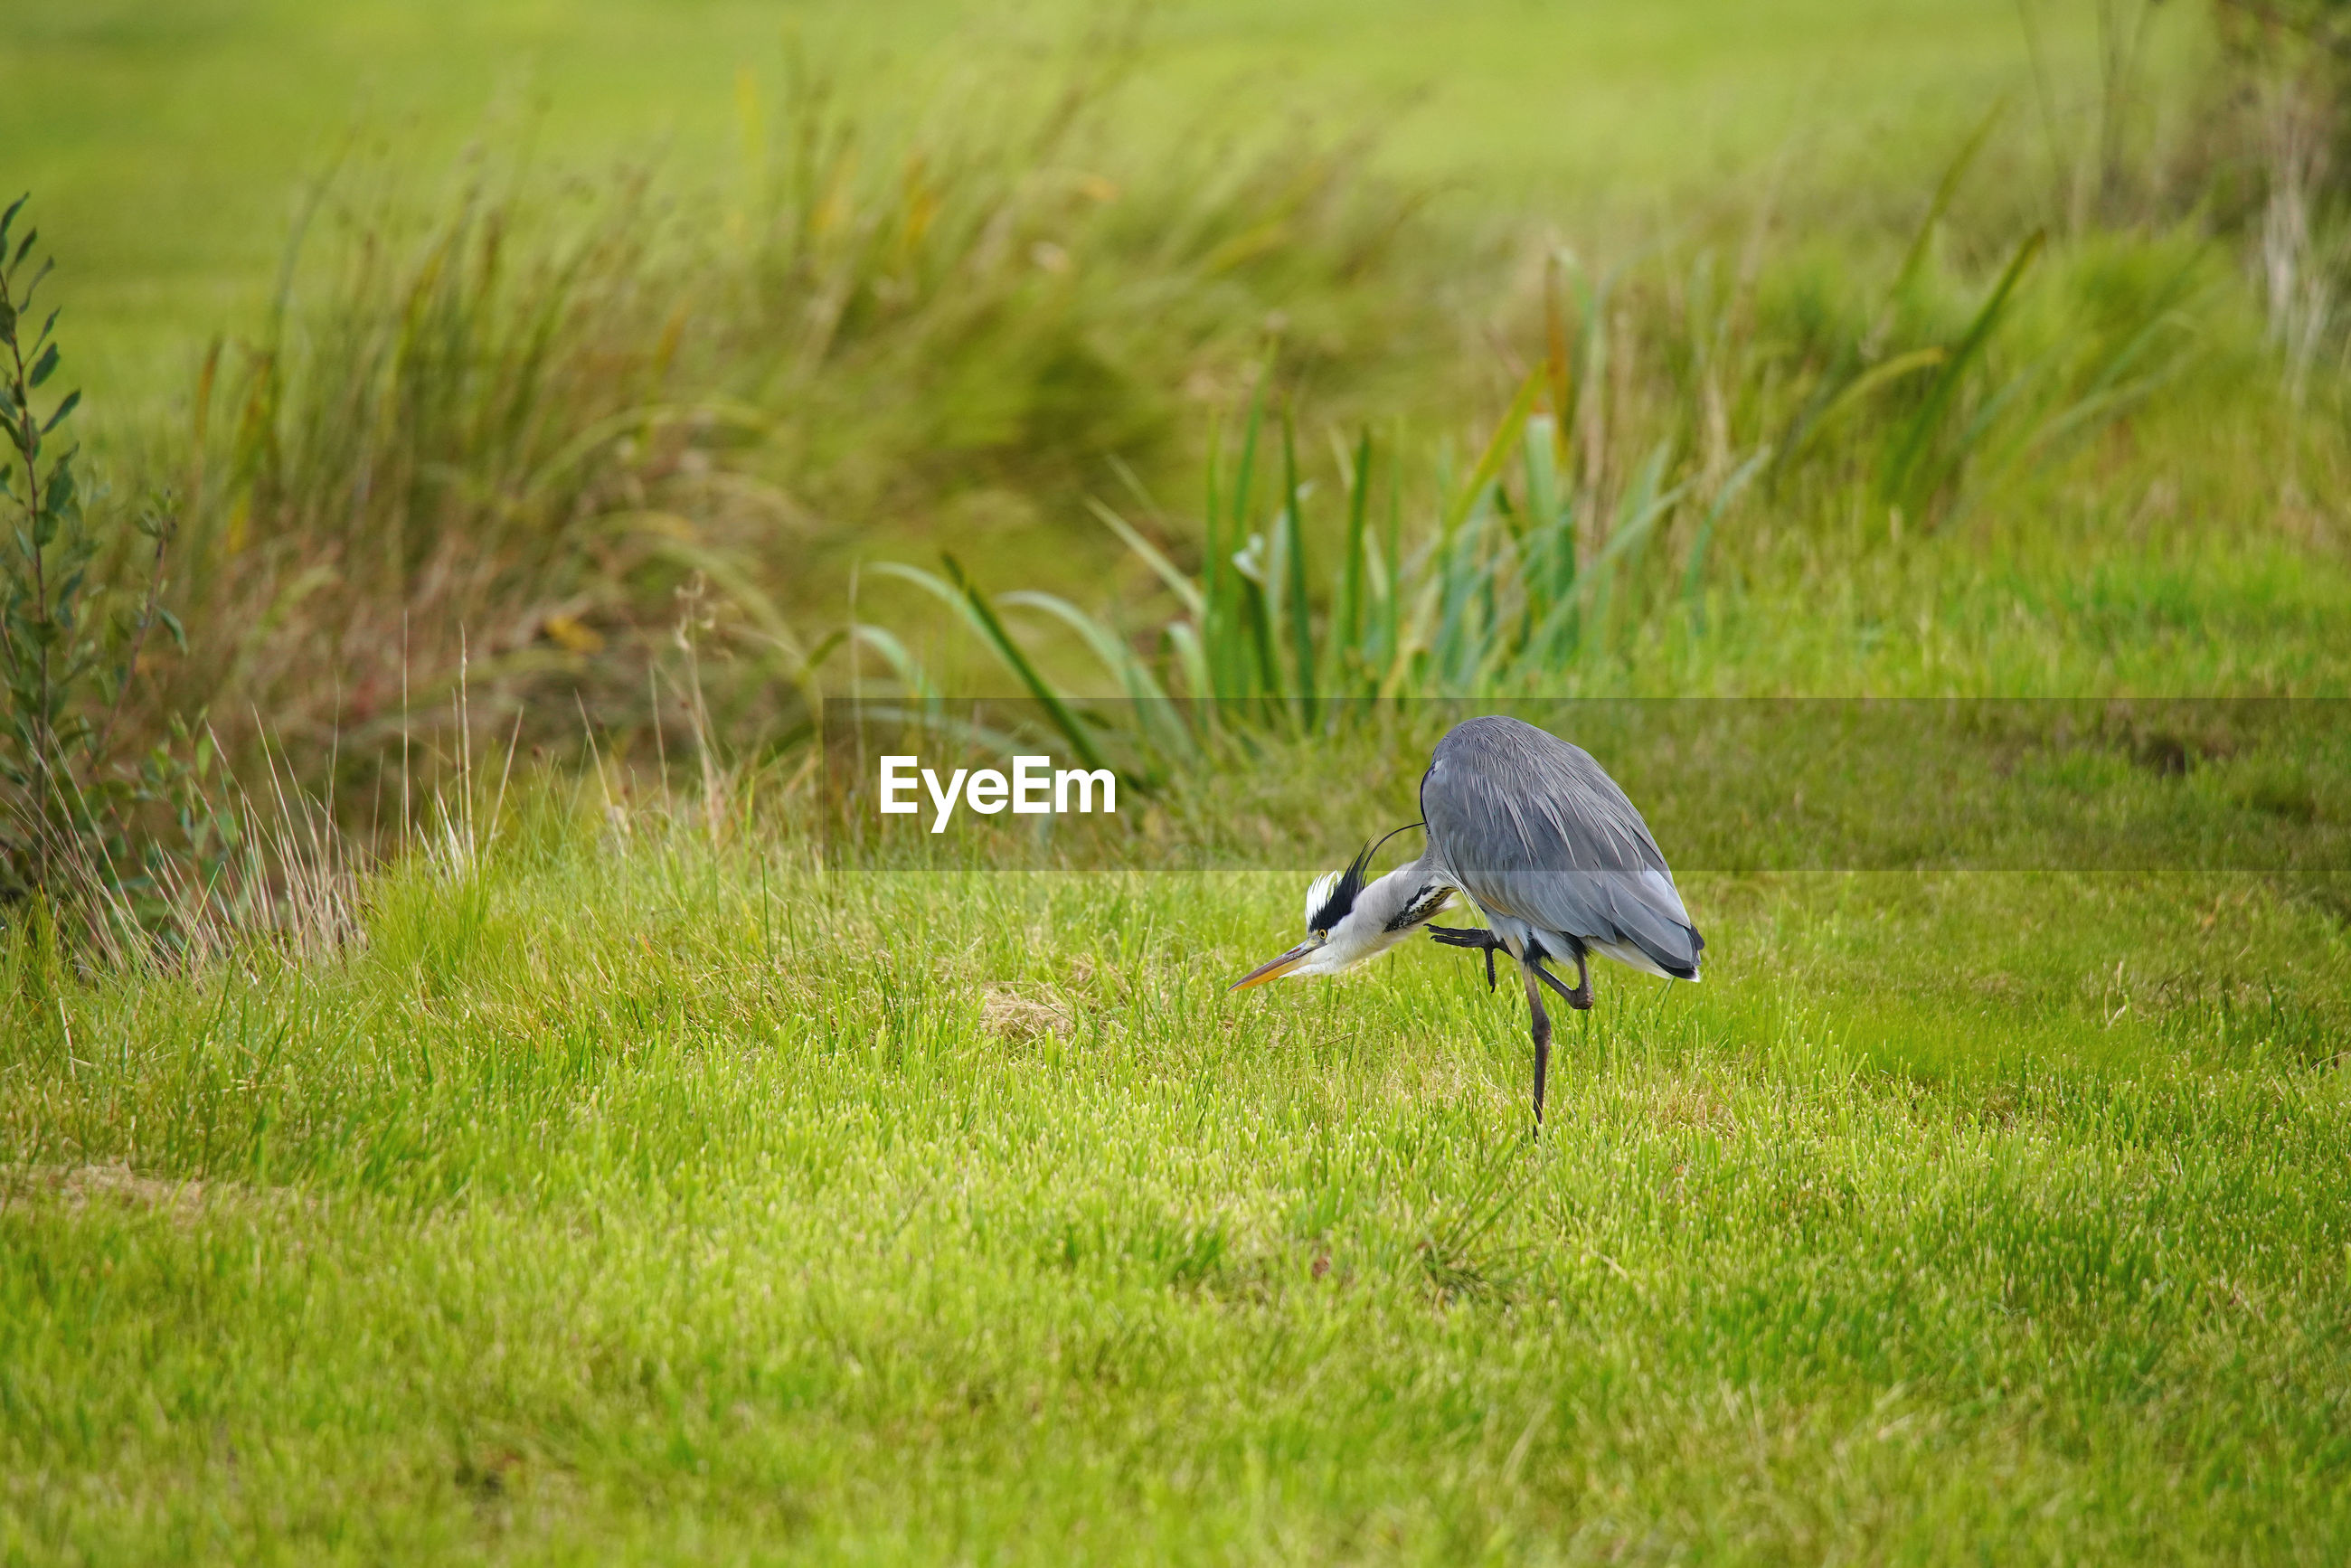 VIEW OF A BIRD ON FIELD